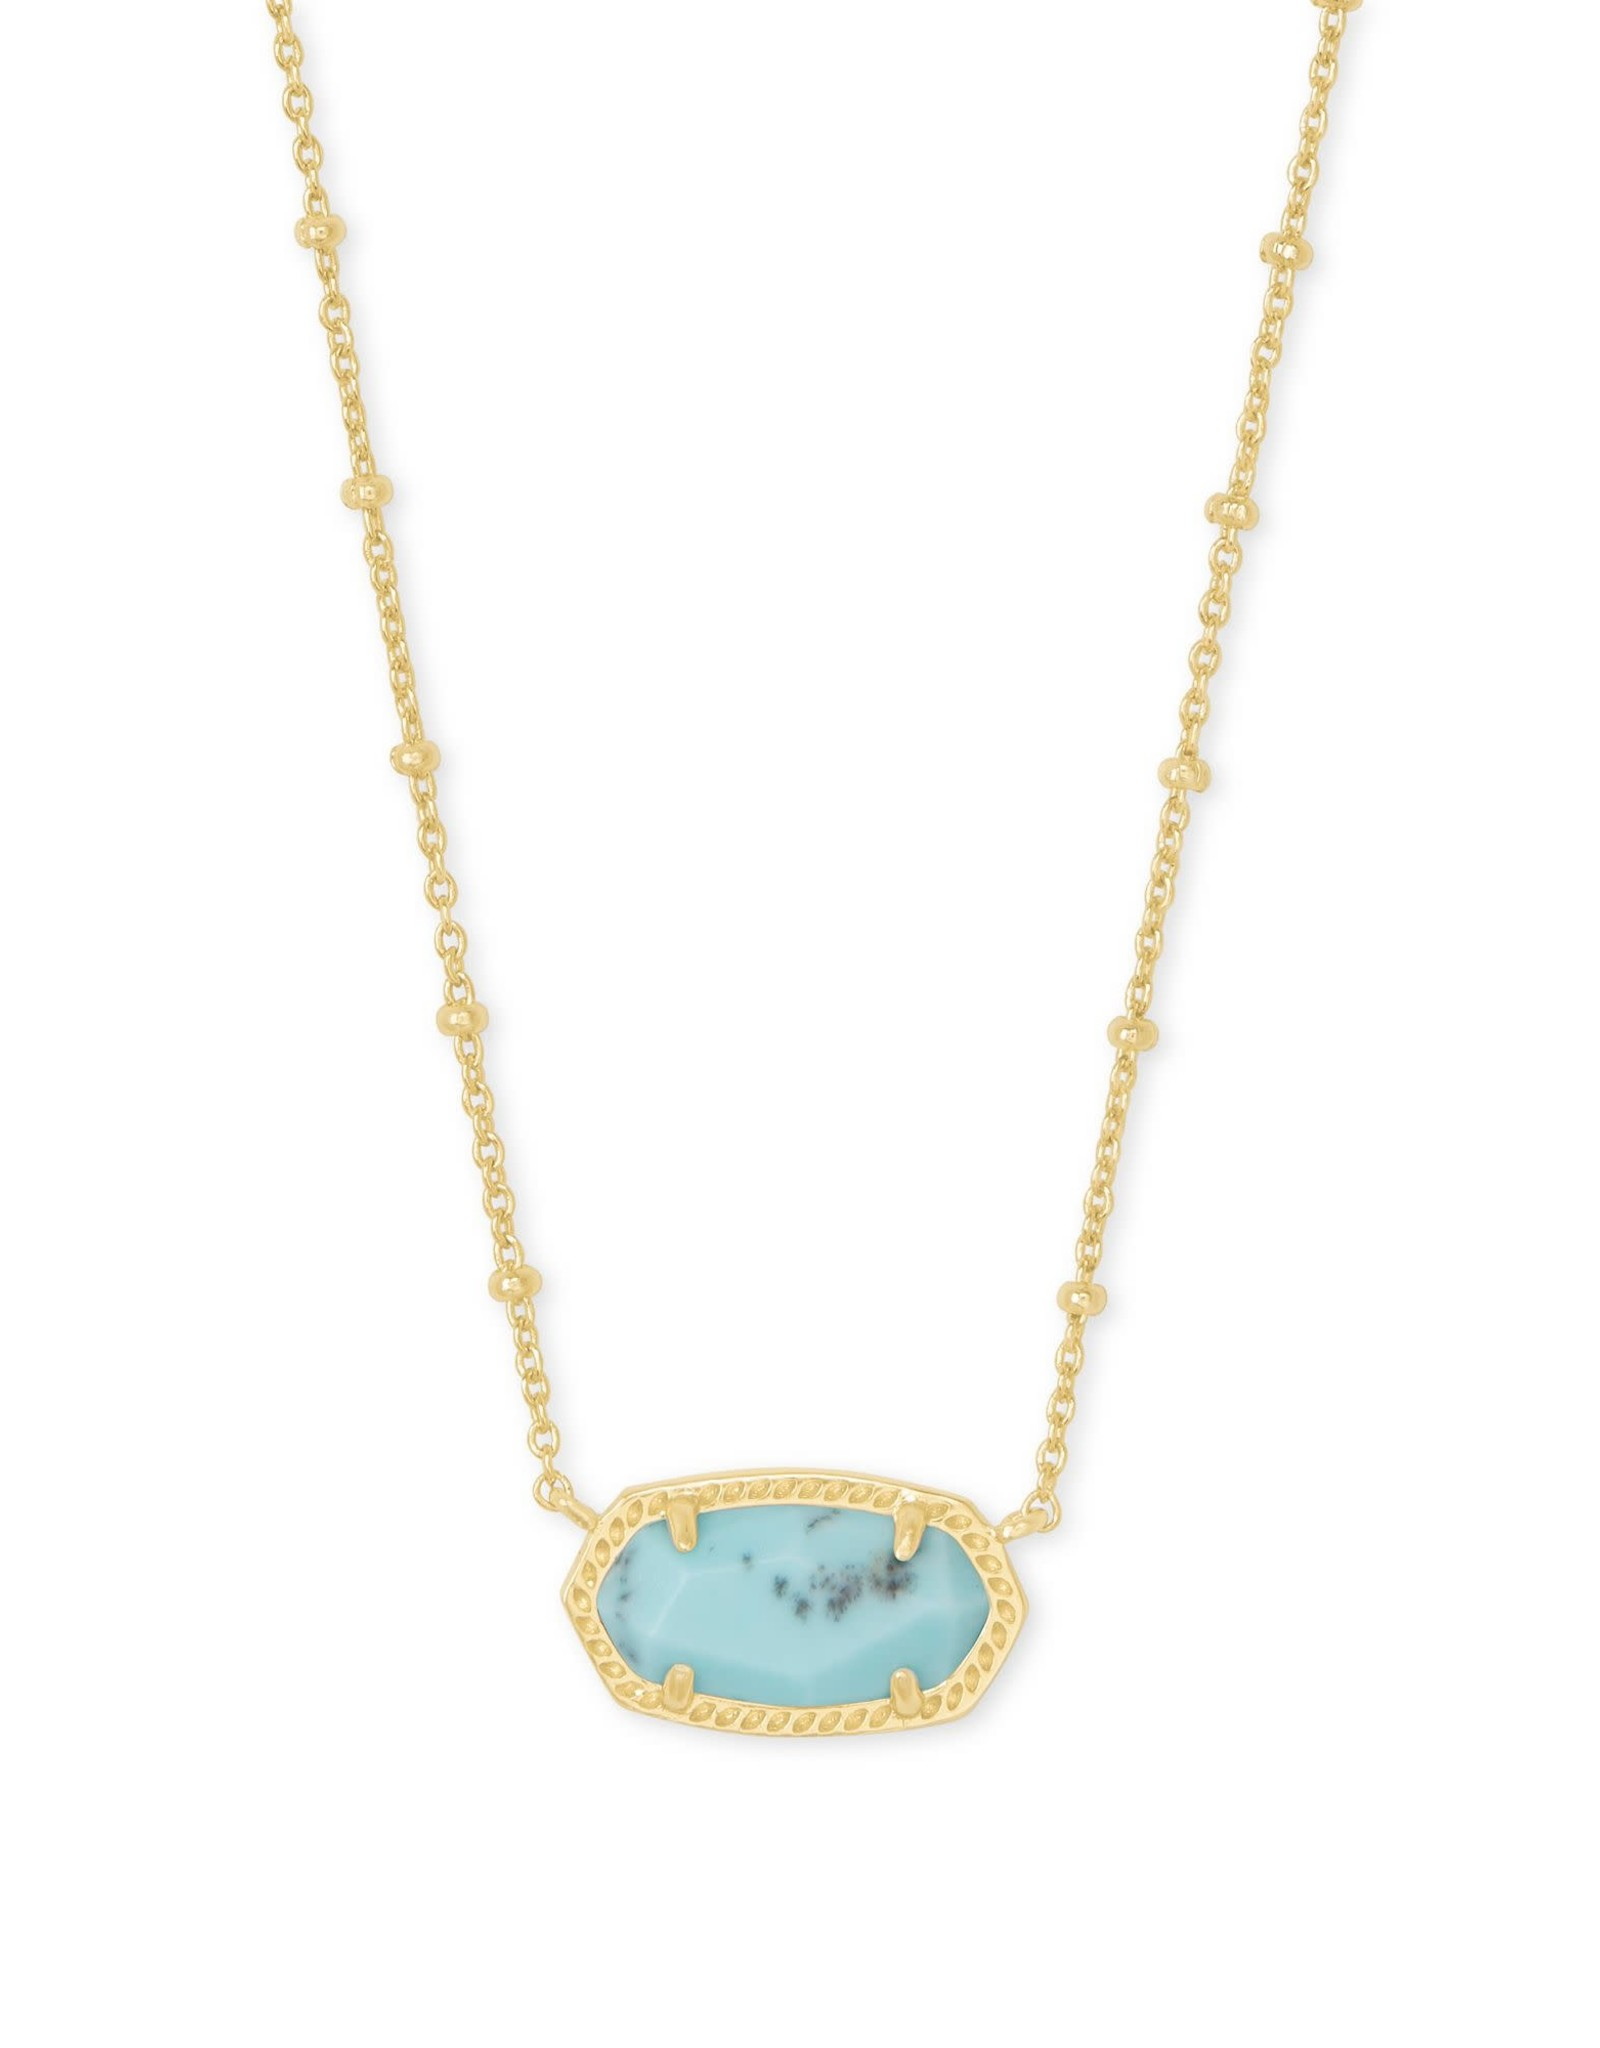 Kendra Scott Elisa Satellite Short Necklace - Light Blue Magnesite/Gold